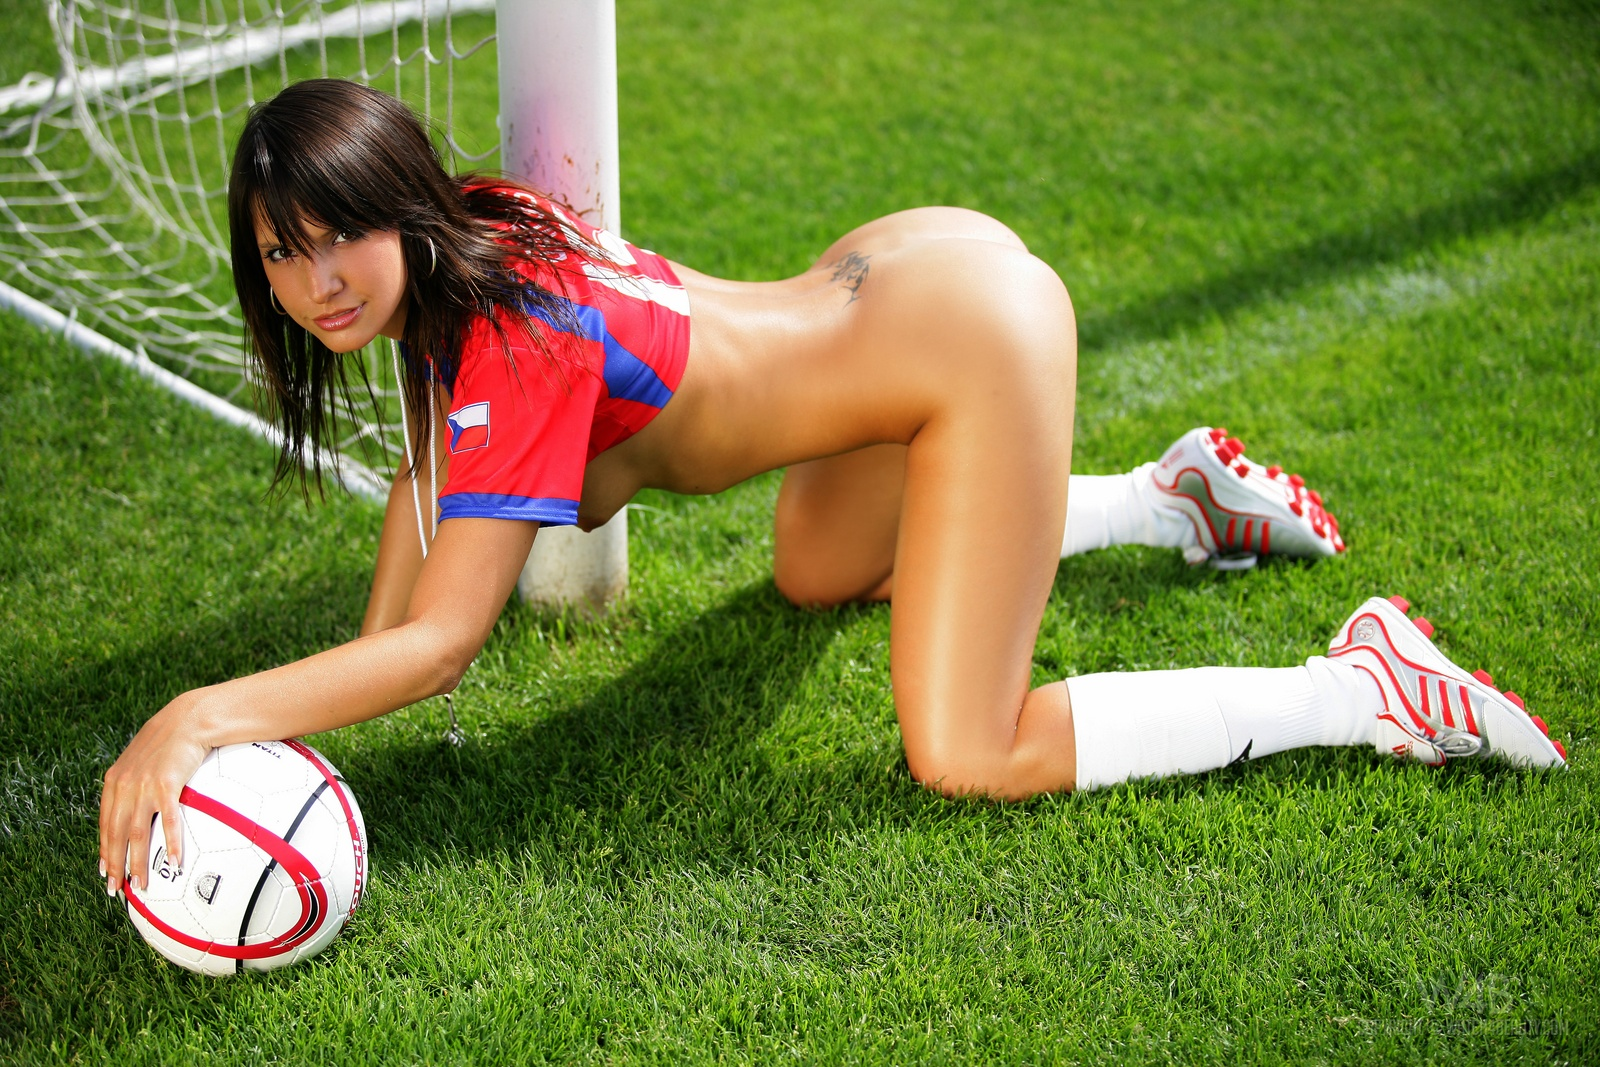 Girl nude on football field — 12